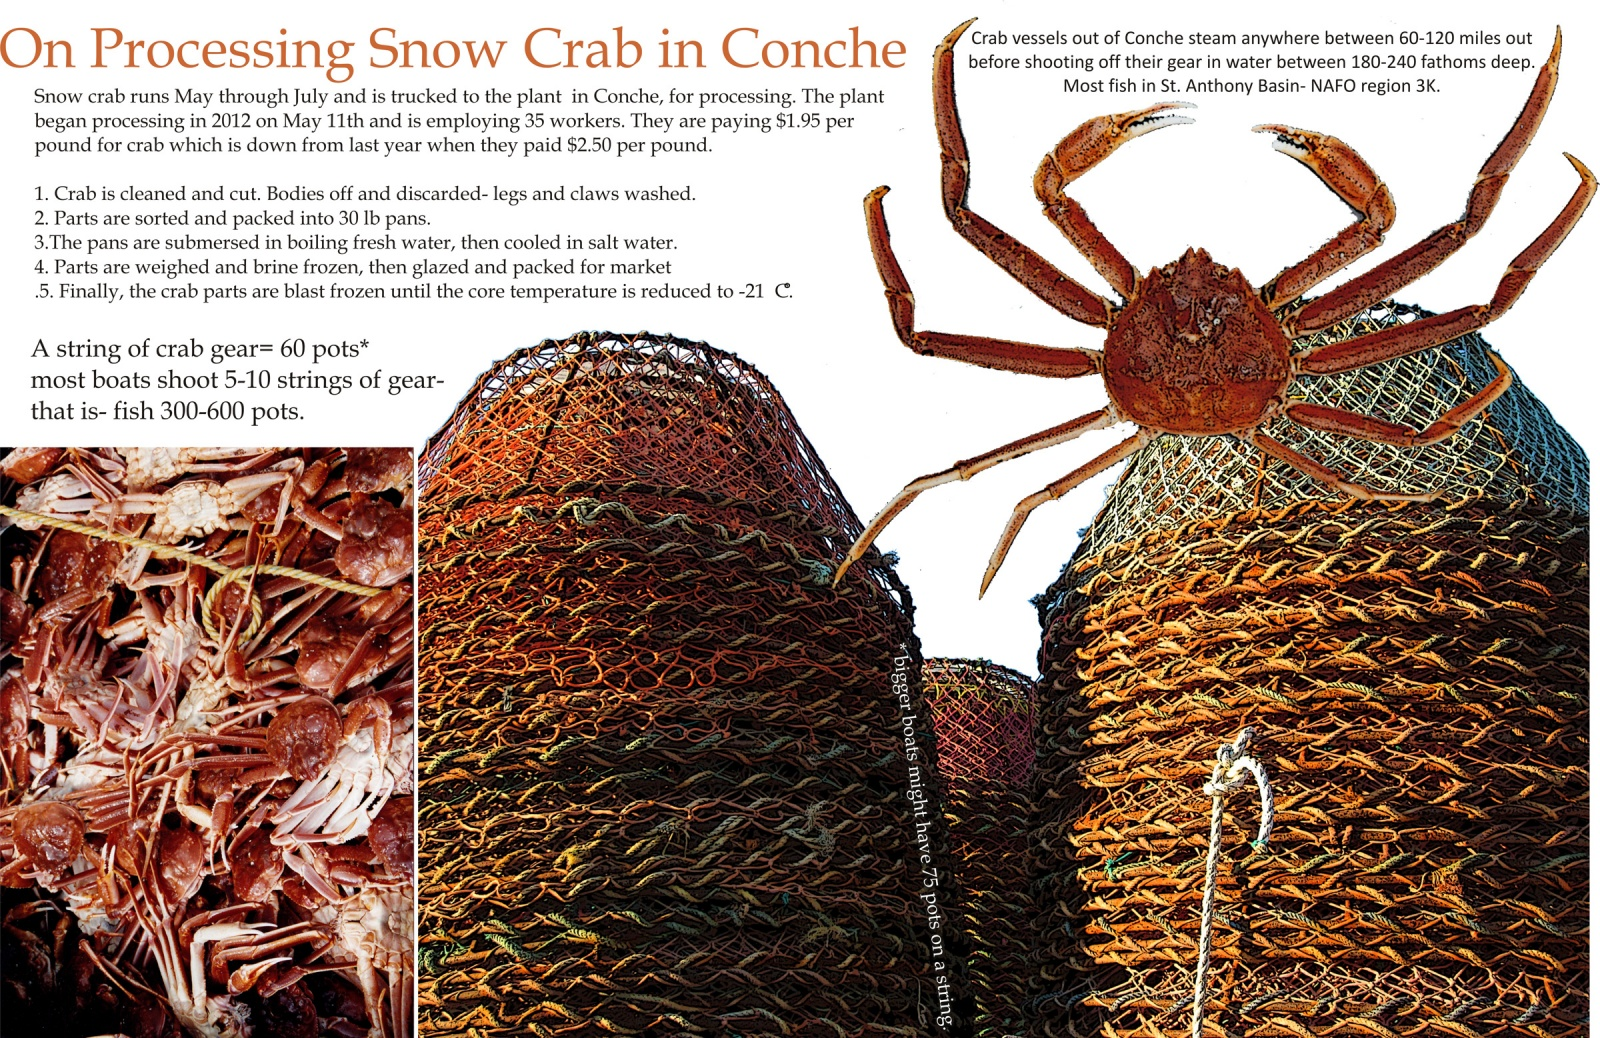 On Processing Snow Crab in Conche